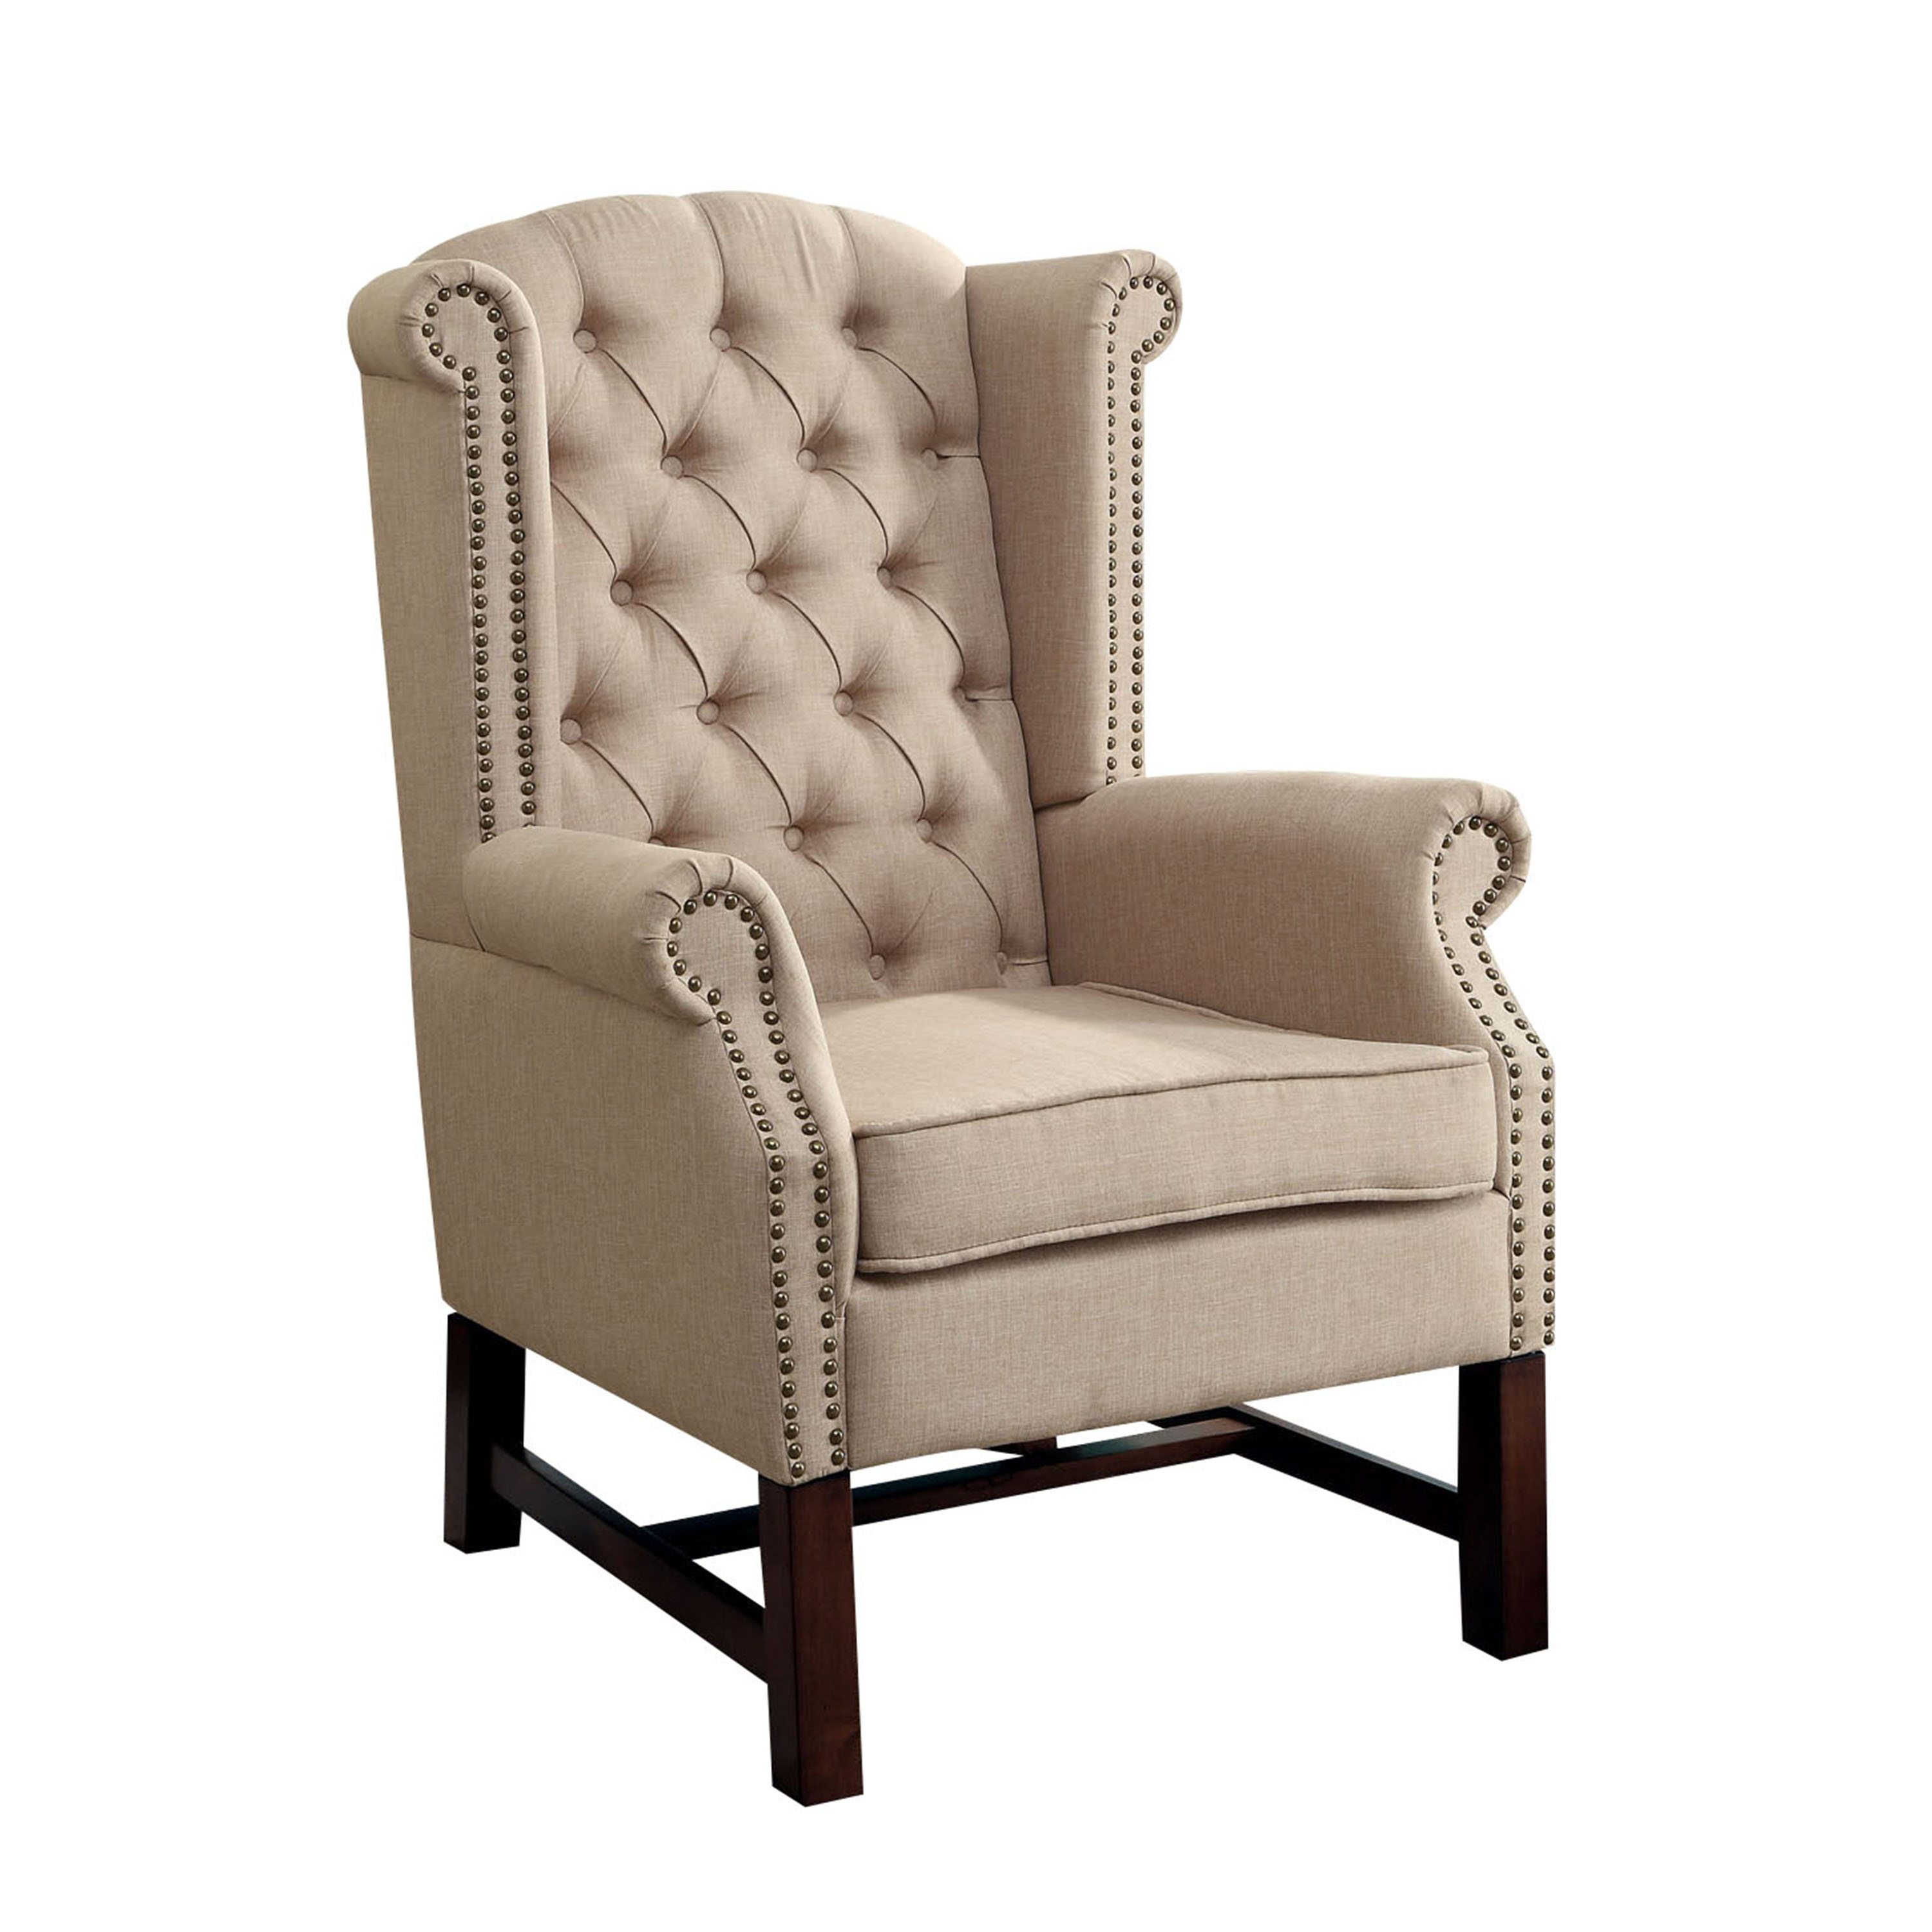 ACME Manly Accent Chair, Beige Fabric